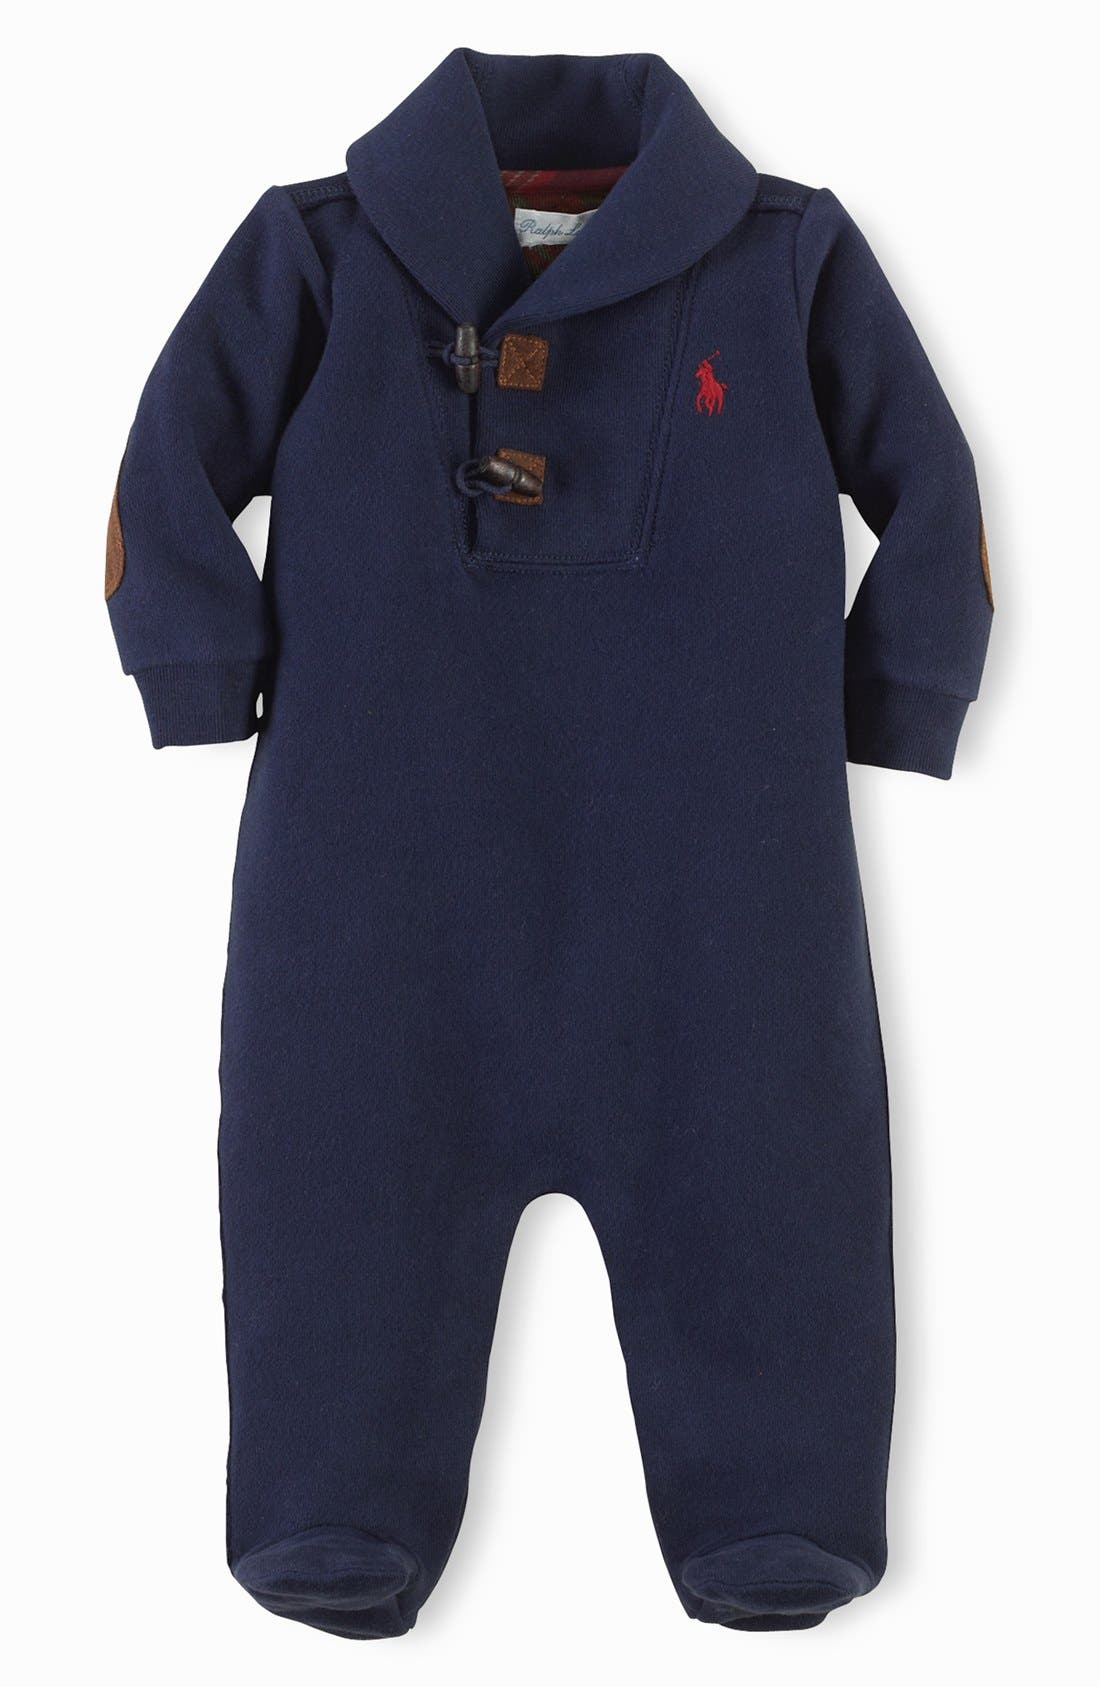 Alternate Image 1 Selected - Ralph Lauren Shawl Collar One-Piece (Baby Boys)